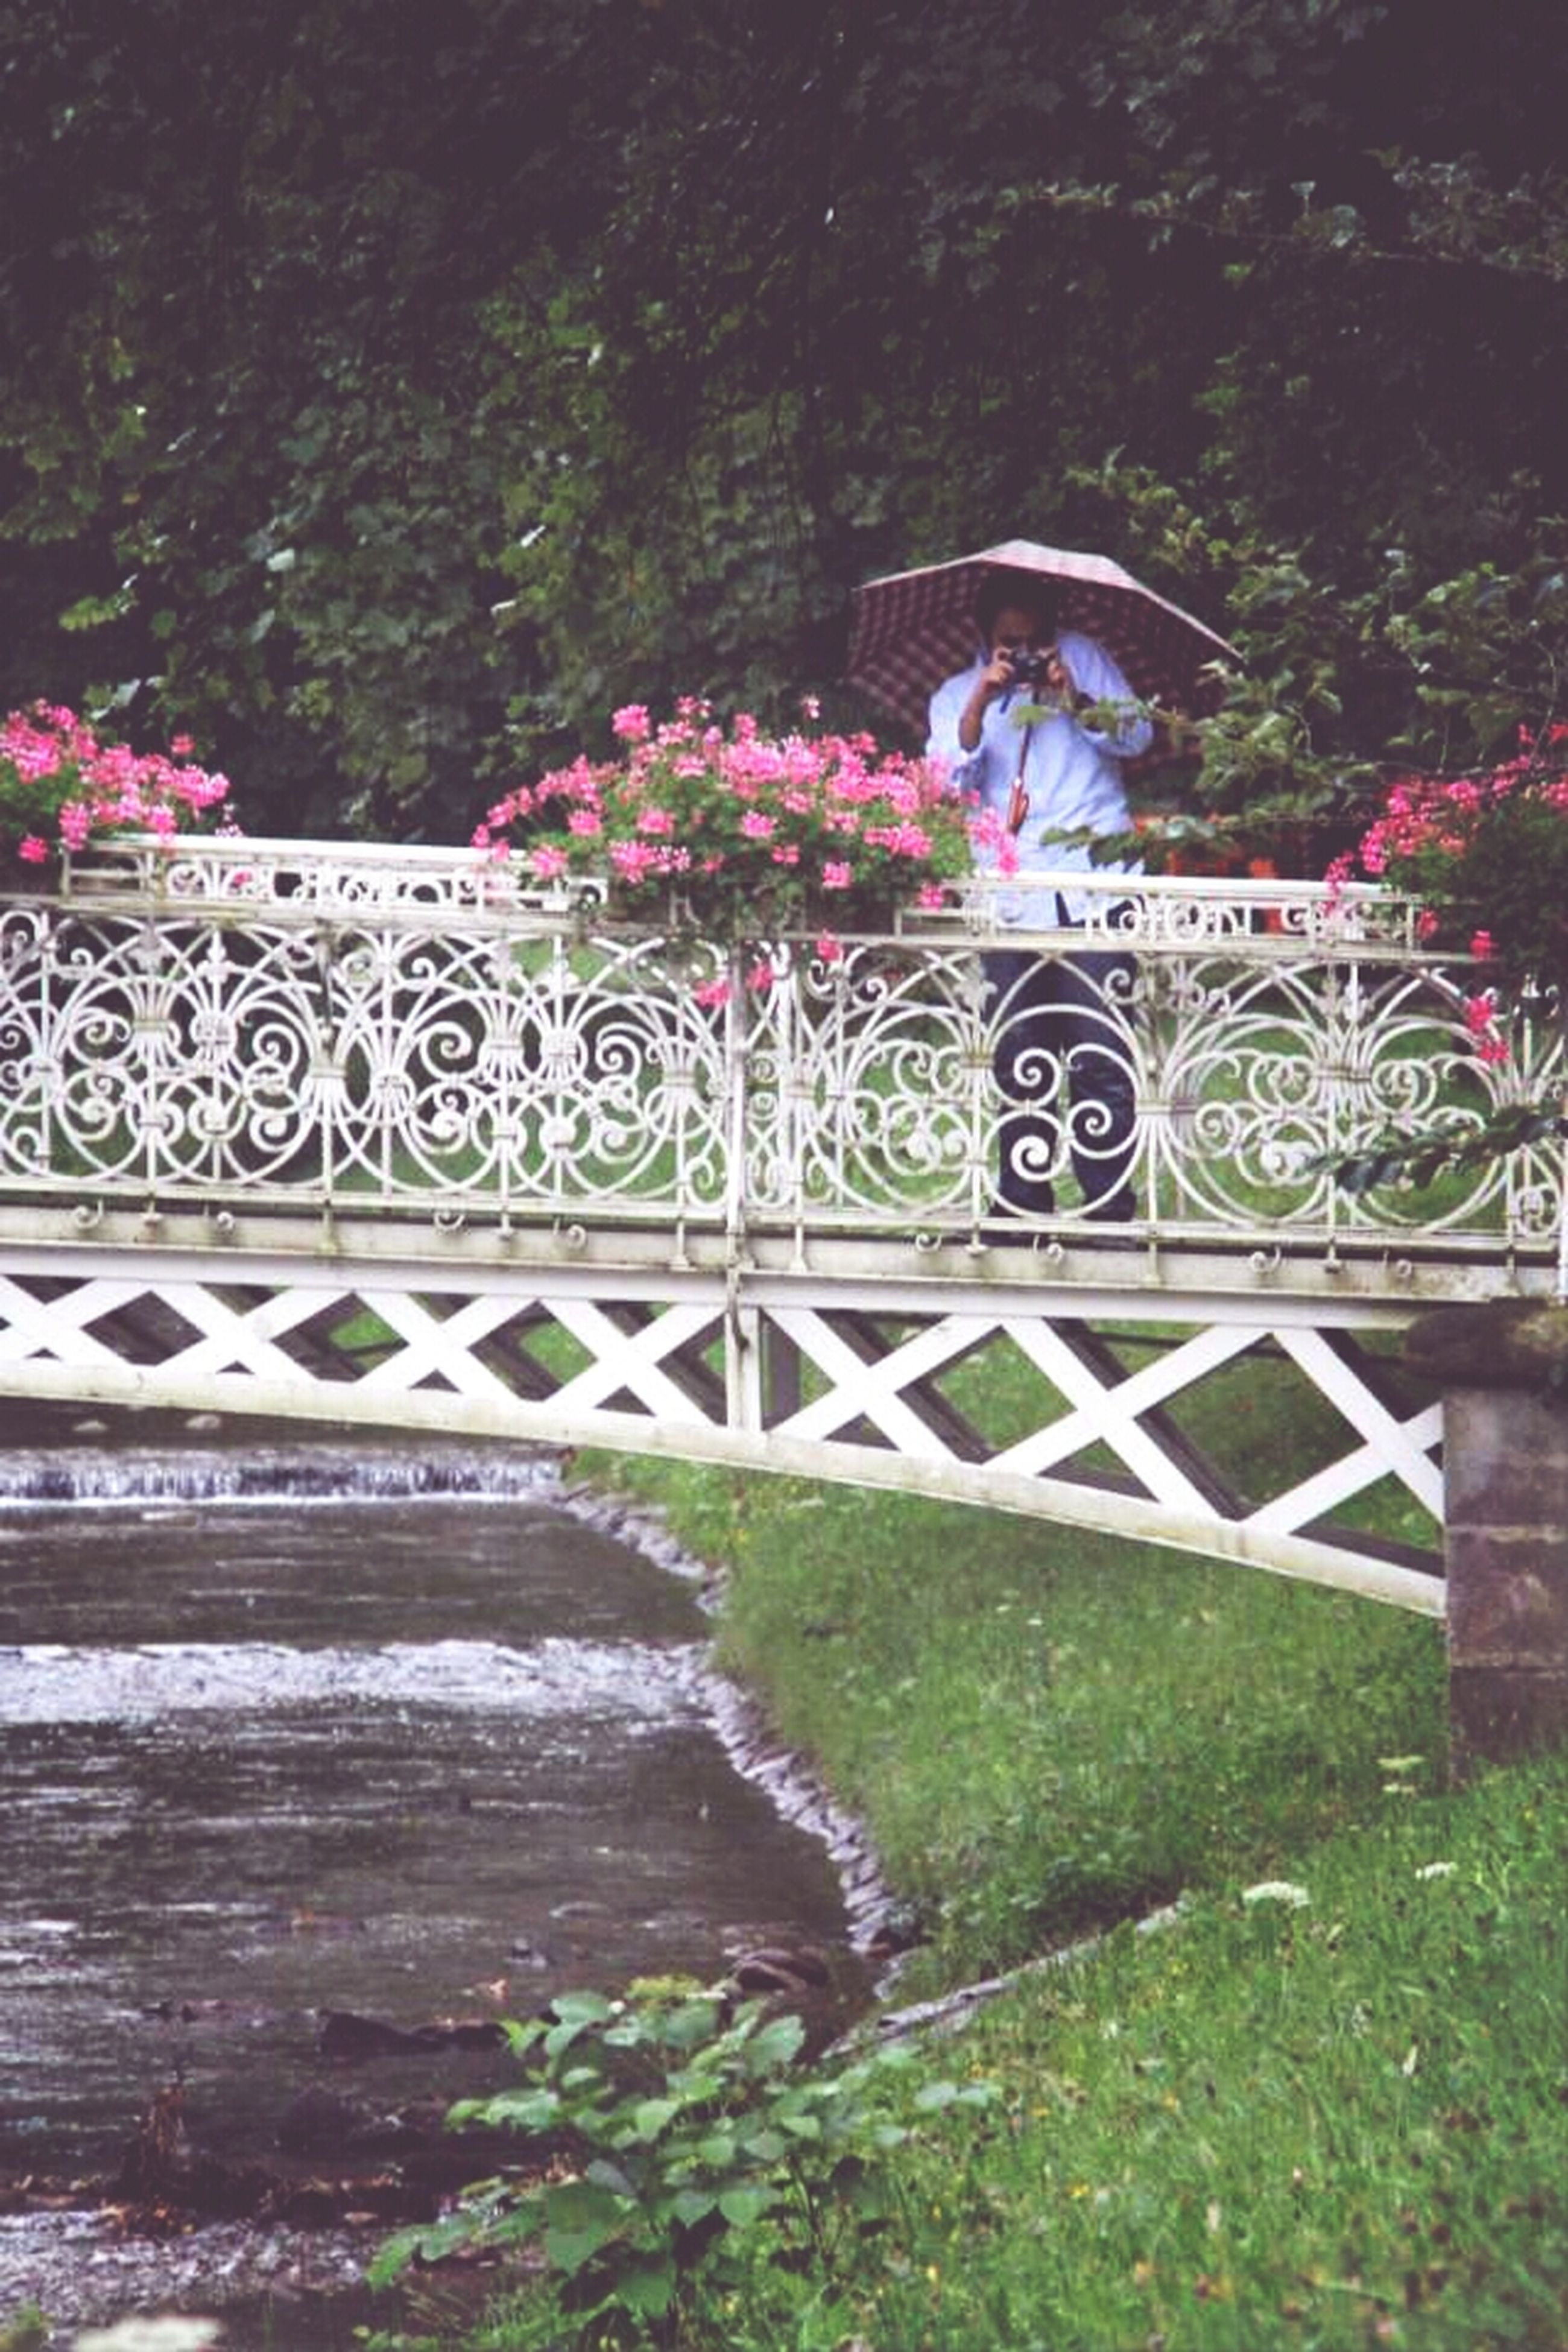 built structure, plant, tree, architecture, railing, outdoors, bridge - man made structure, nature, park - man made space, no people, growth, day, water, flower, wall - building feature, steps, beauty in nature, multi colored, sunlight, tranquility